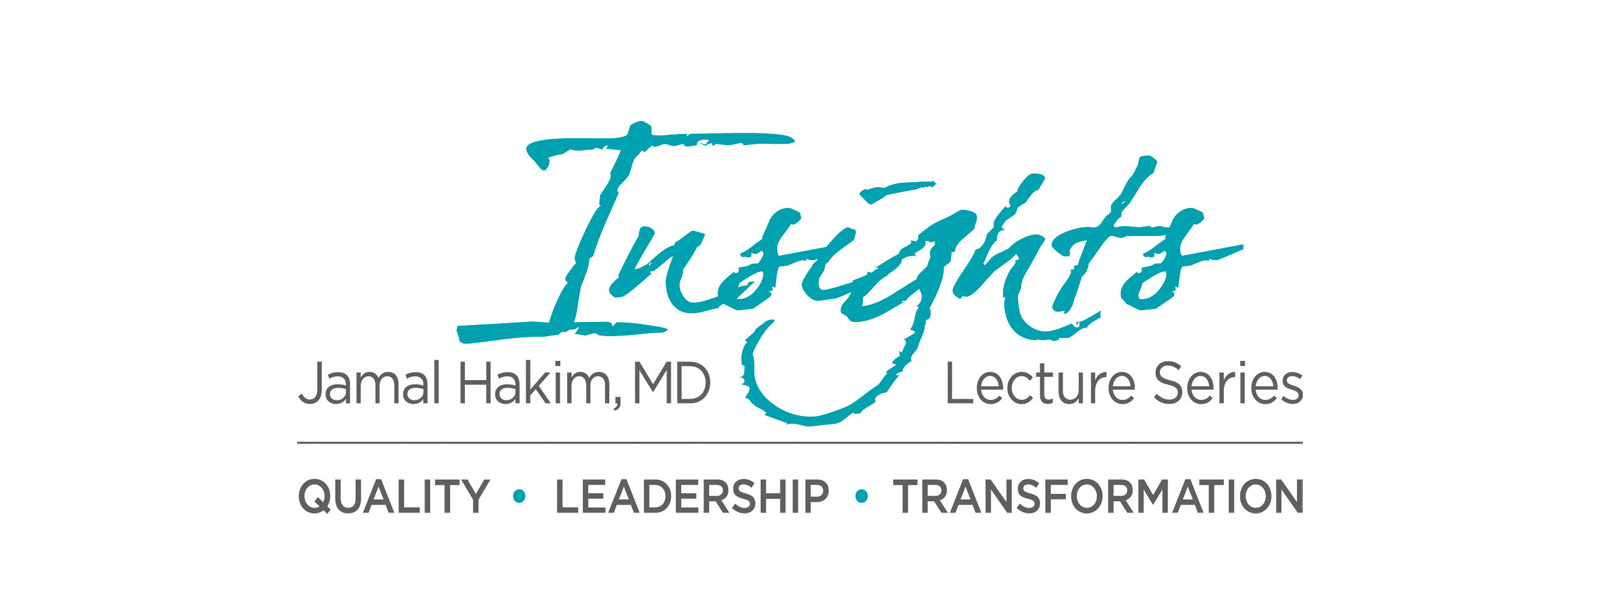 Jamal Hakim, MD Insights Lecture Series